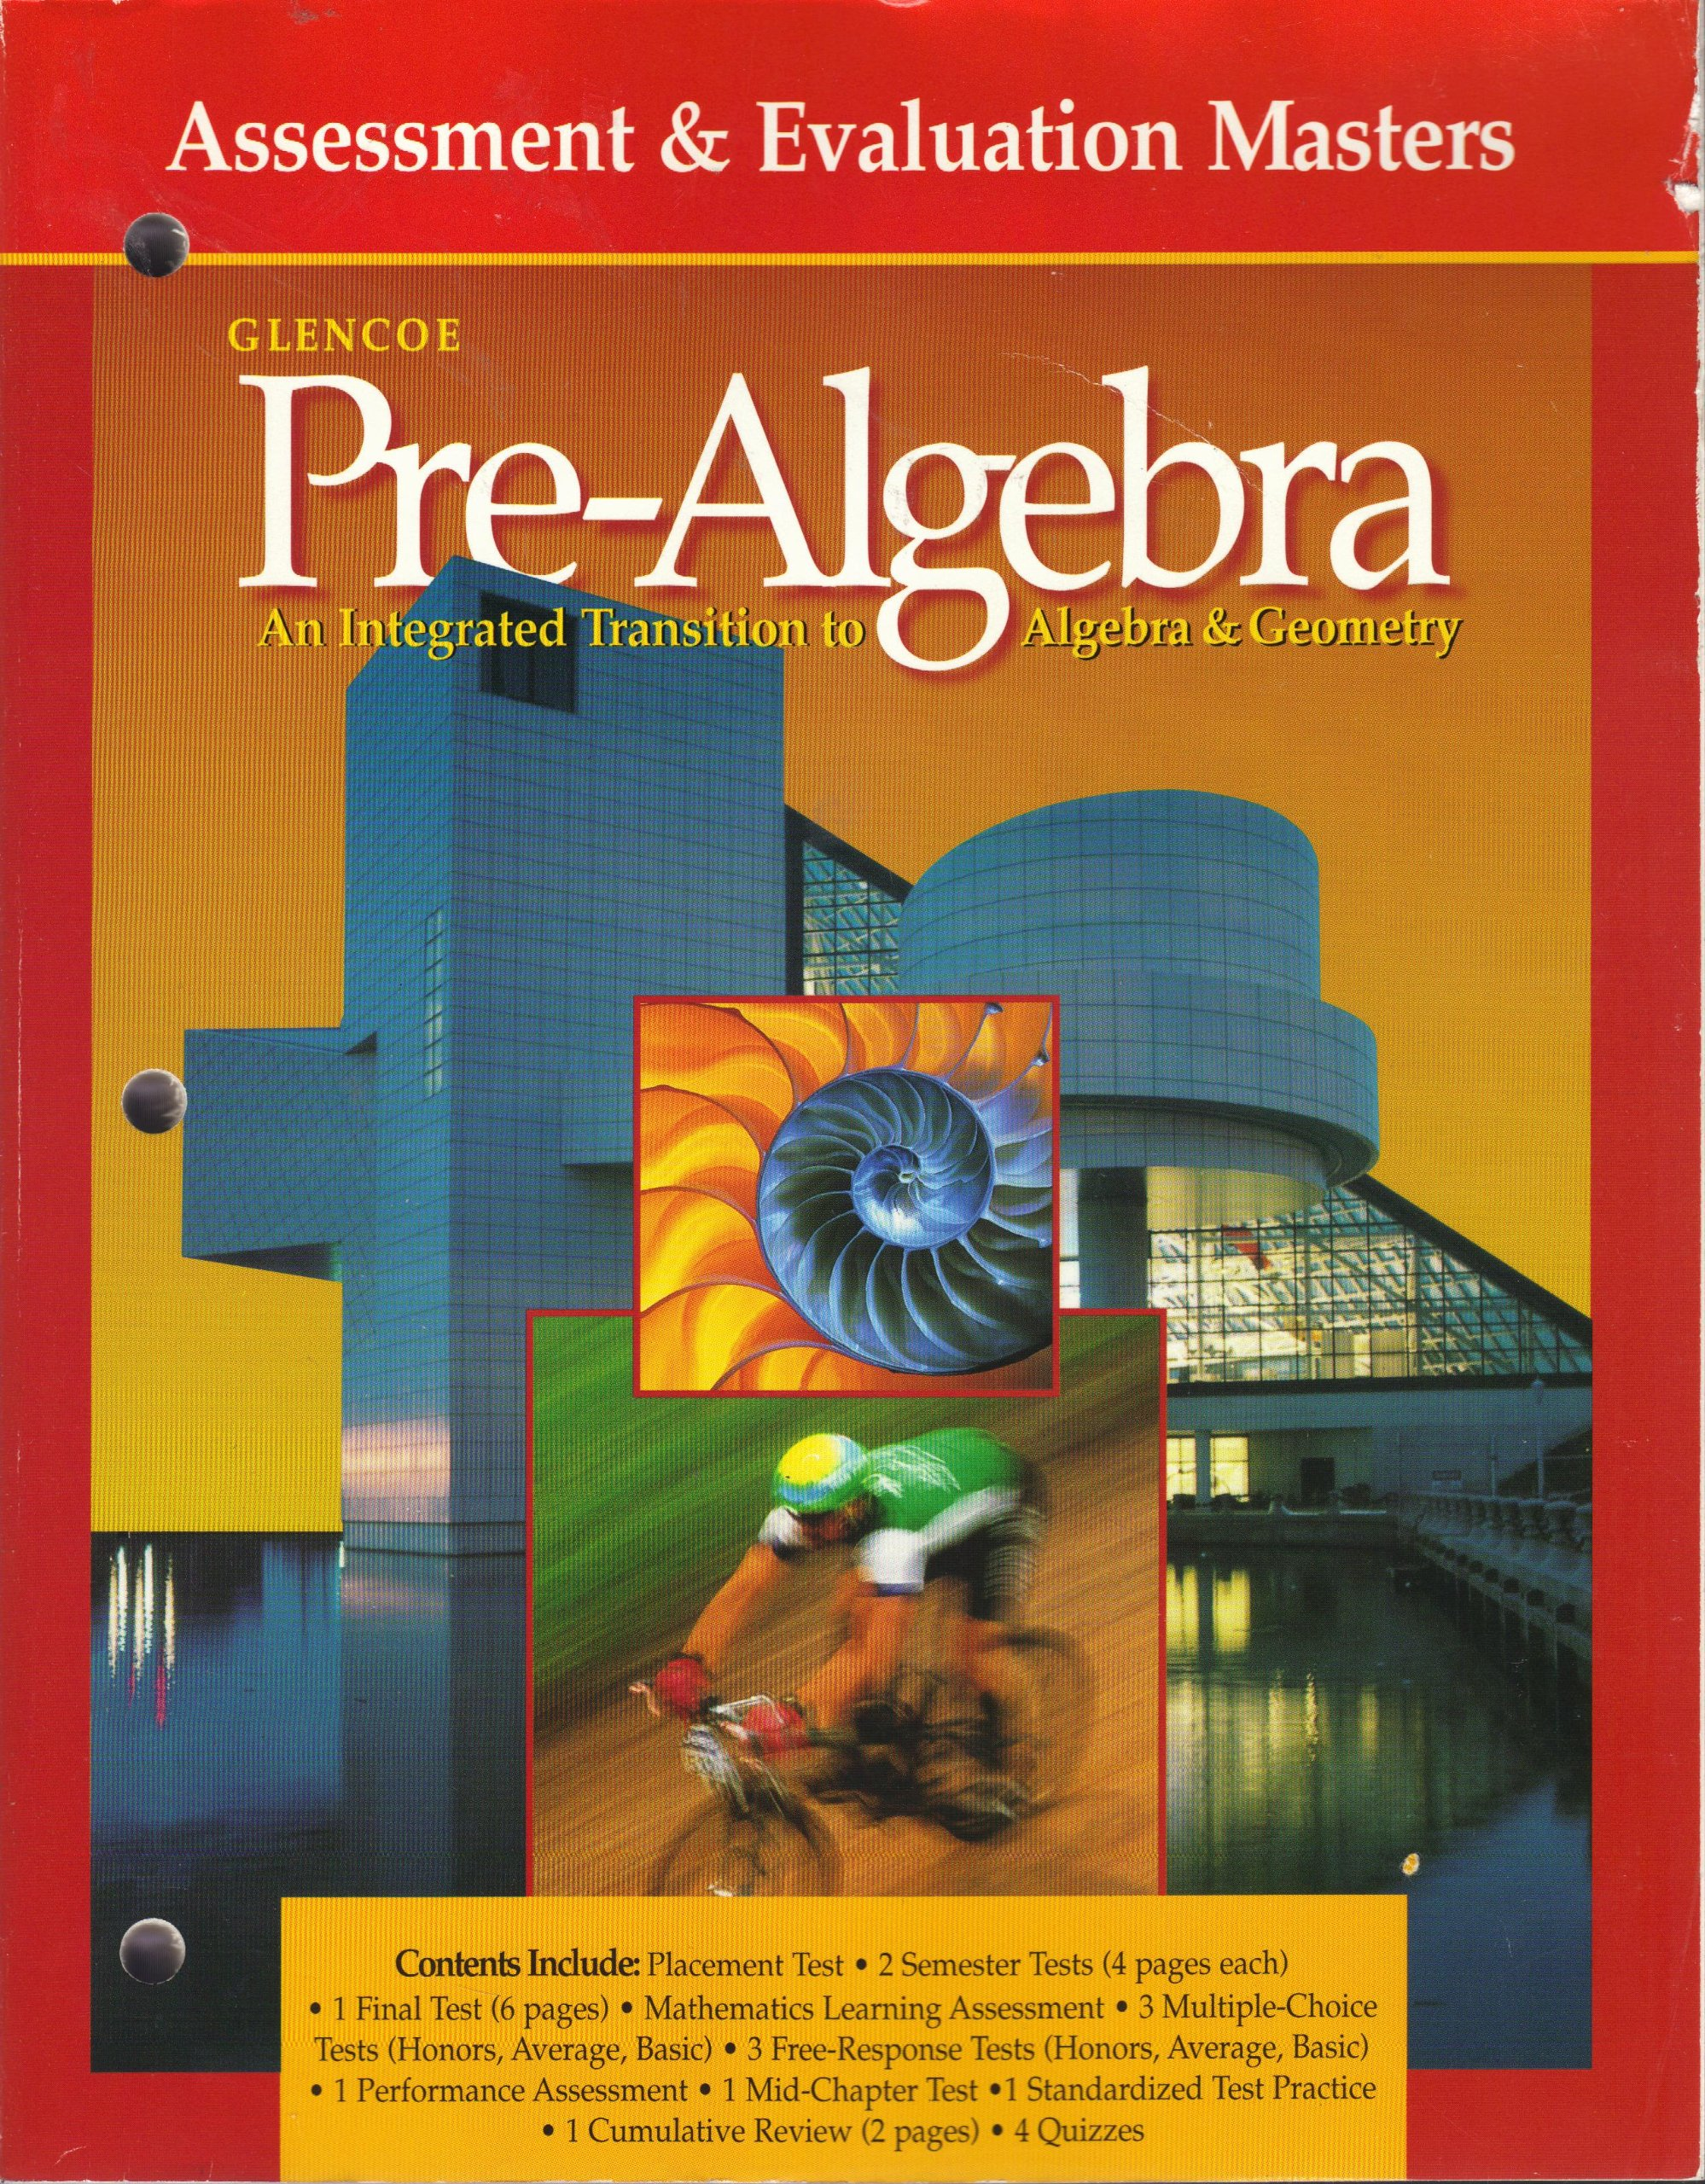 Glencoe Pre-Algebra: An Integrated Transition to Algebra & Geometry